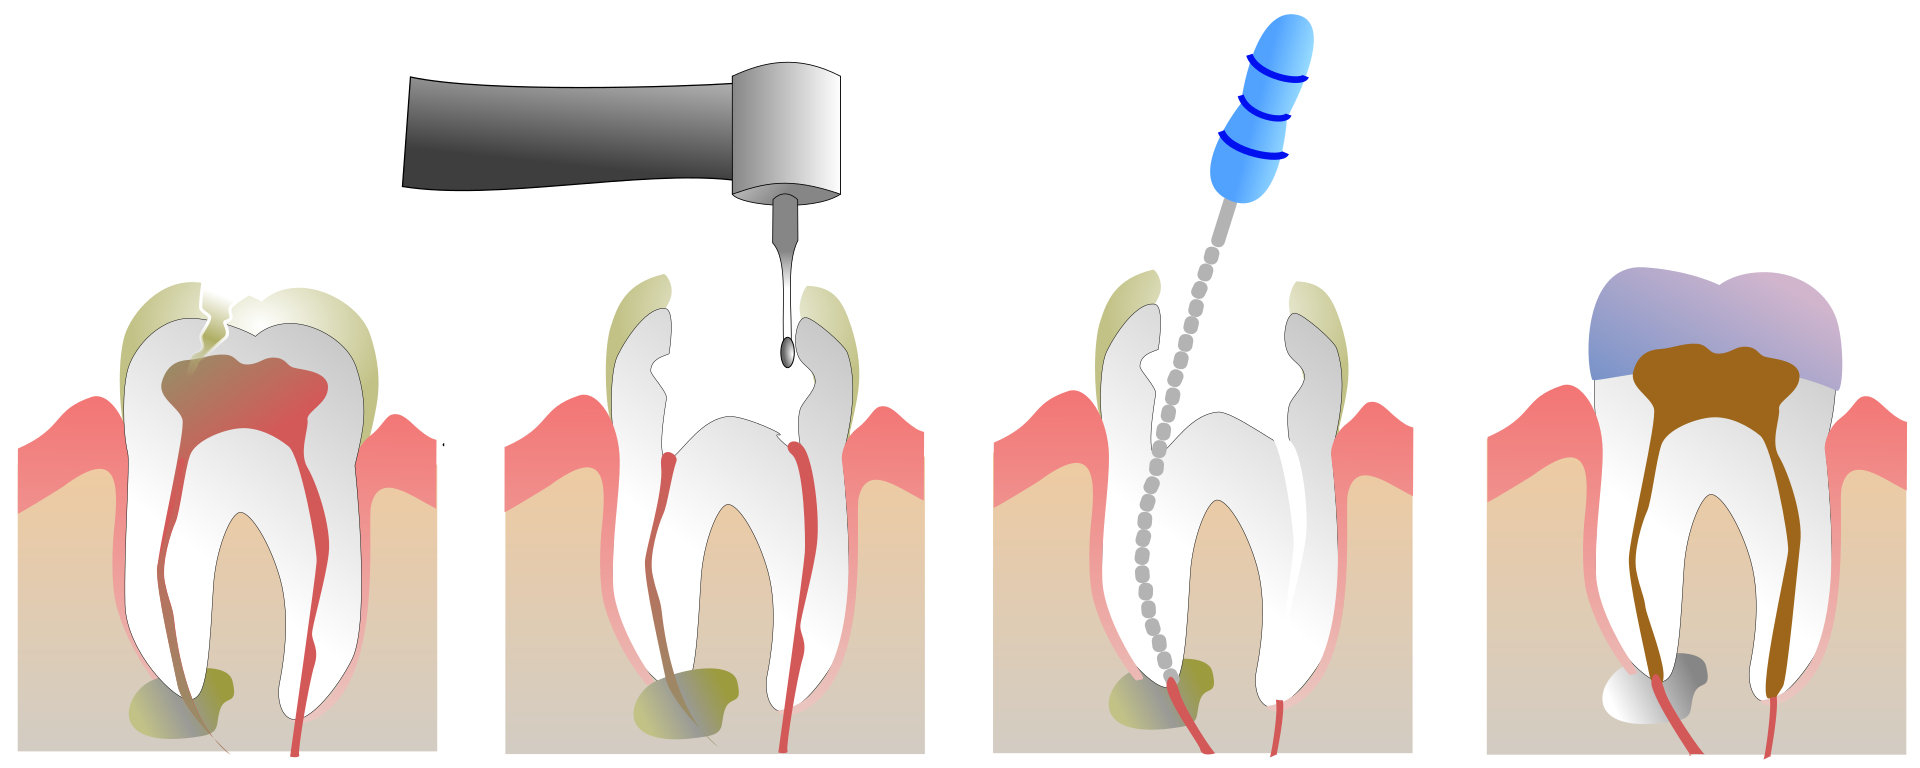 Root Canal Treatment in Colombia (Dental Tourism Colombia)